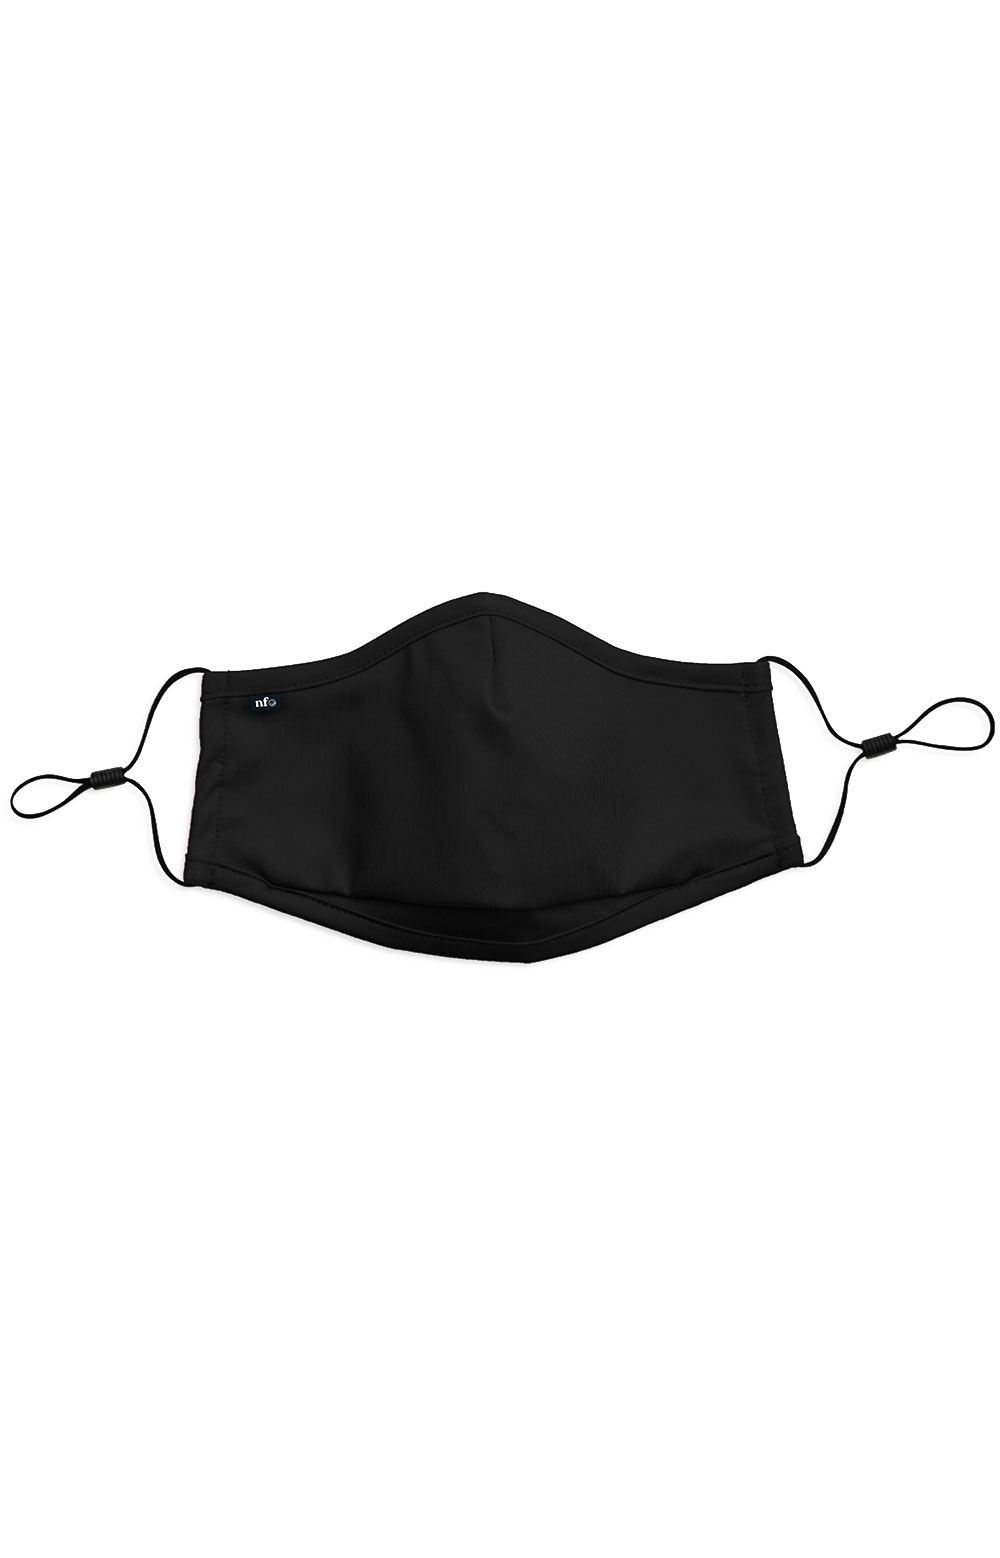 Adult Anti Bacterial Knit Face Mask - Black